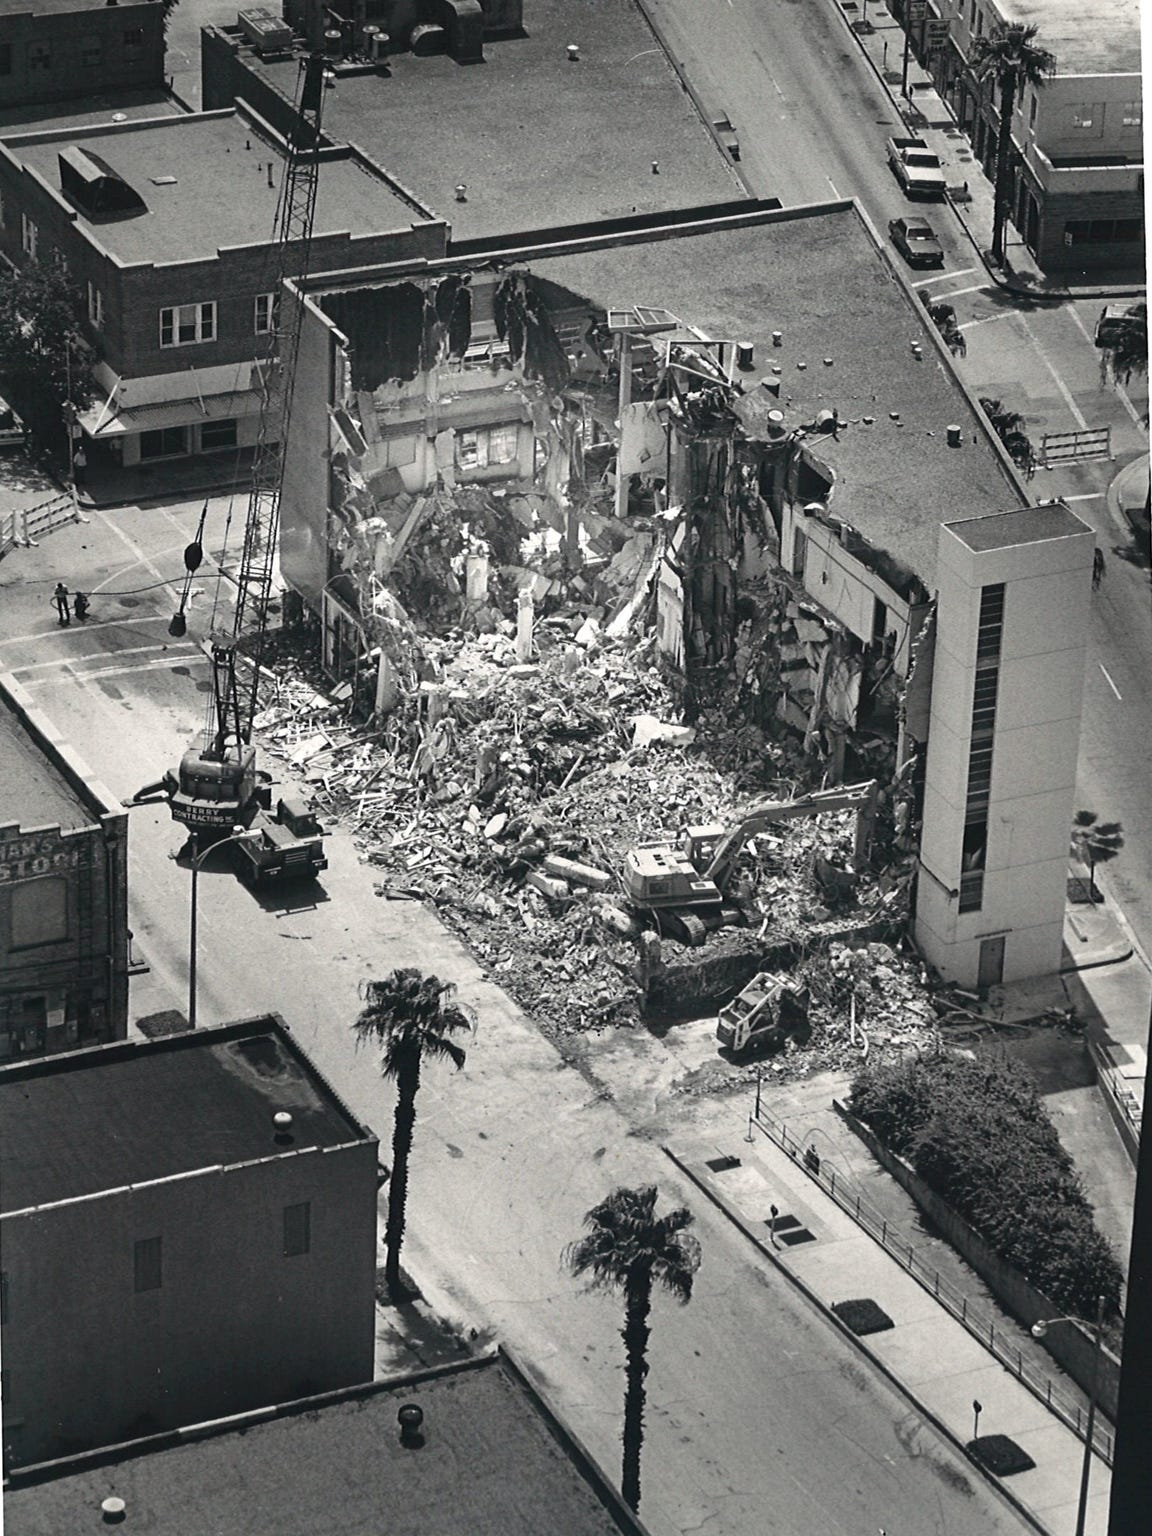 The view of the La Retama Library buidling demolition from the top of Texas Commerce Plaza on July 18, 1987.